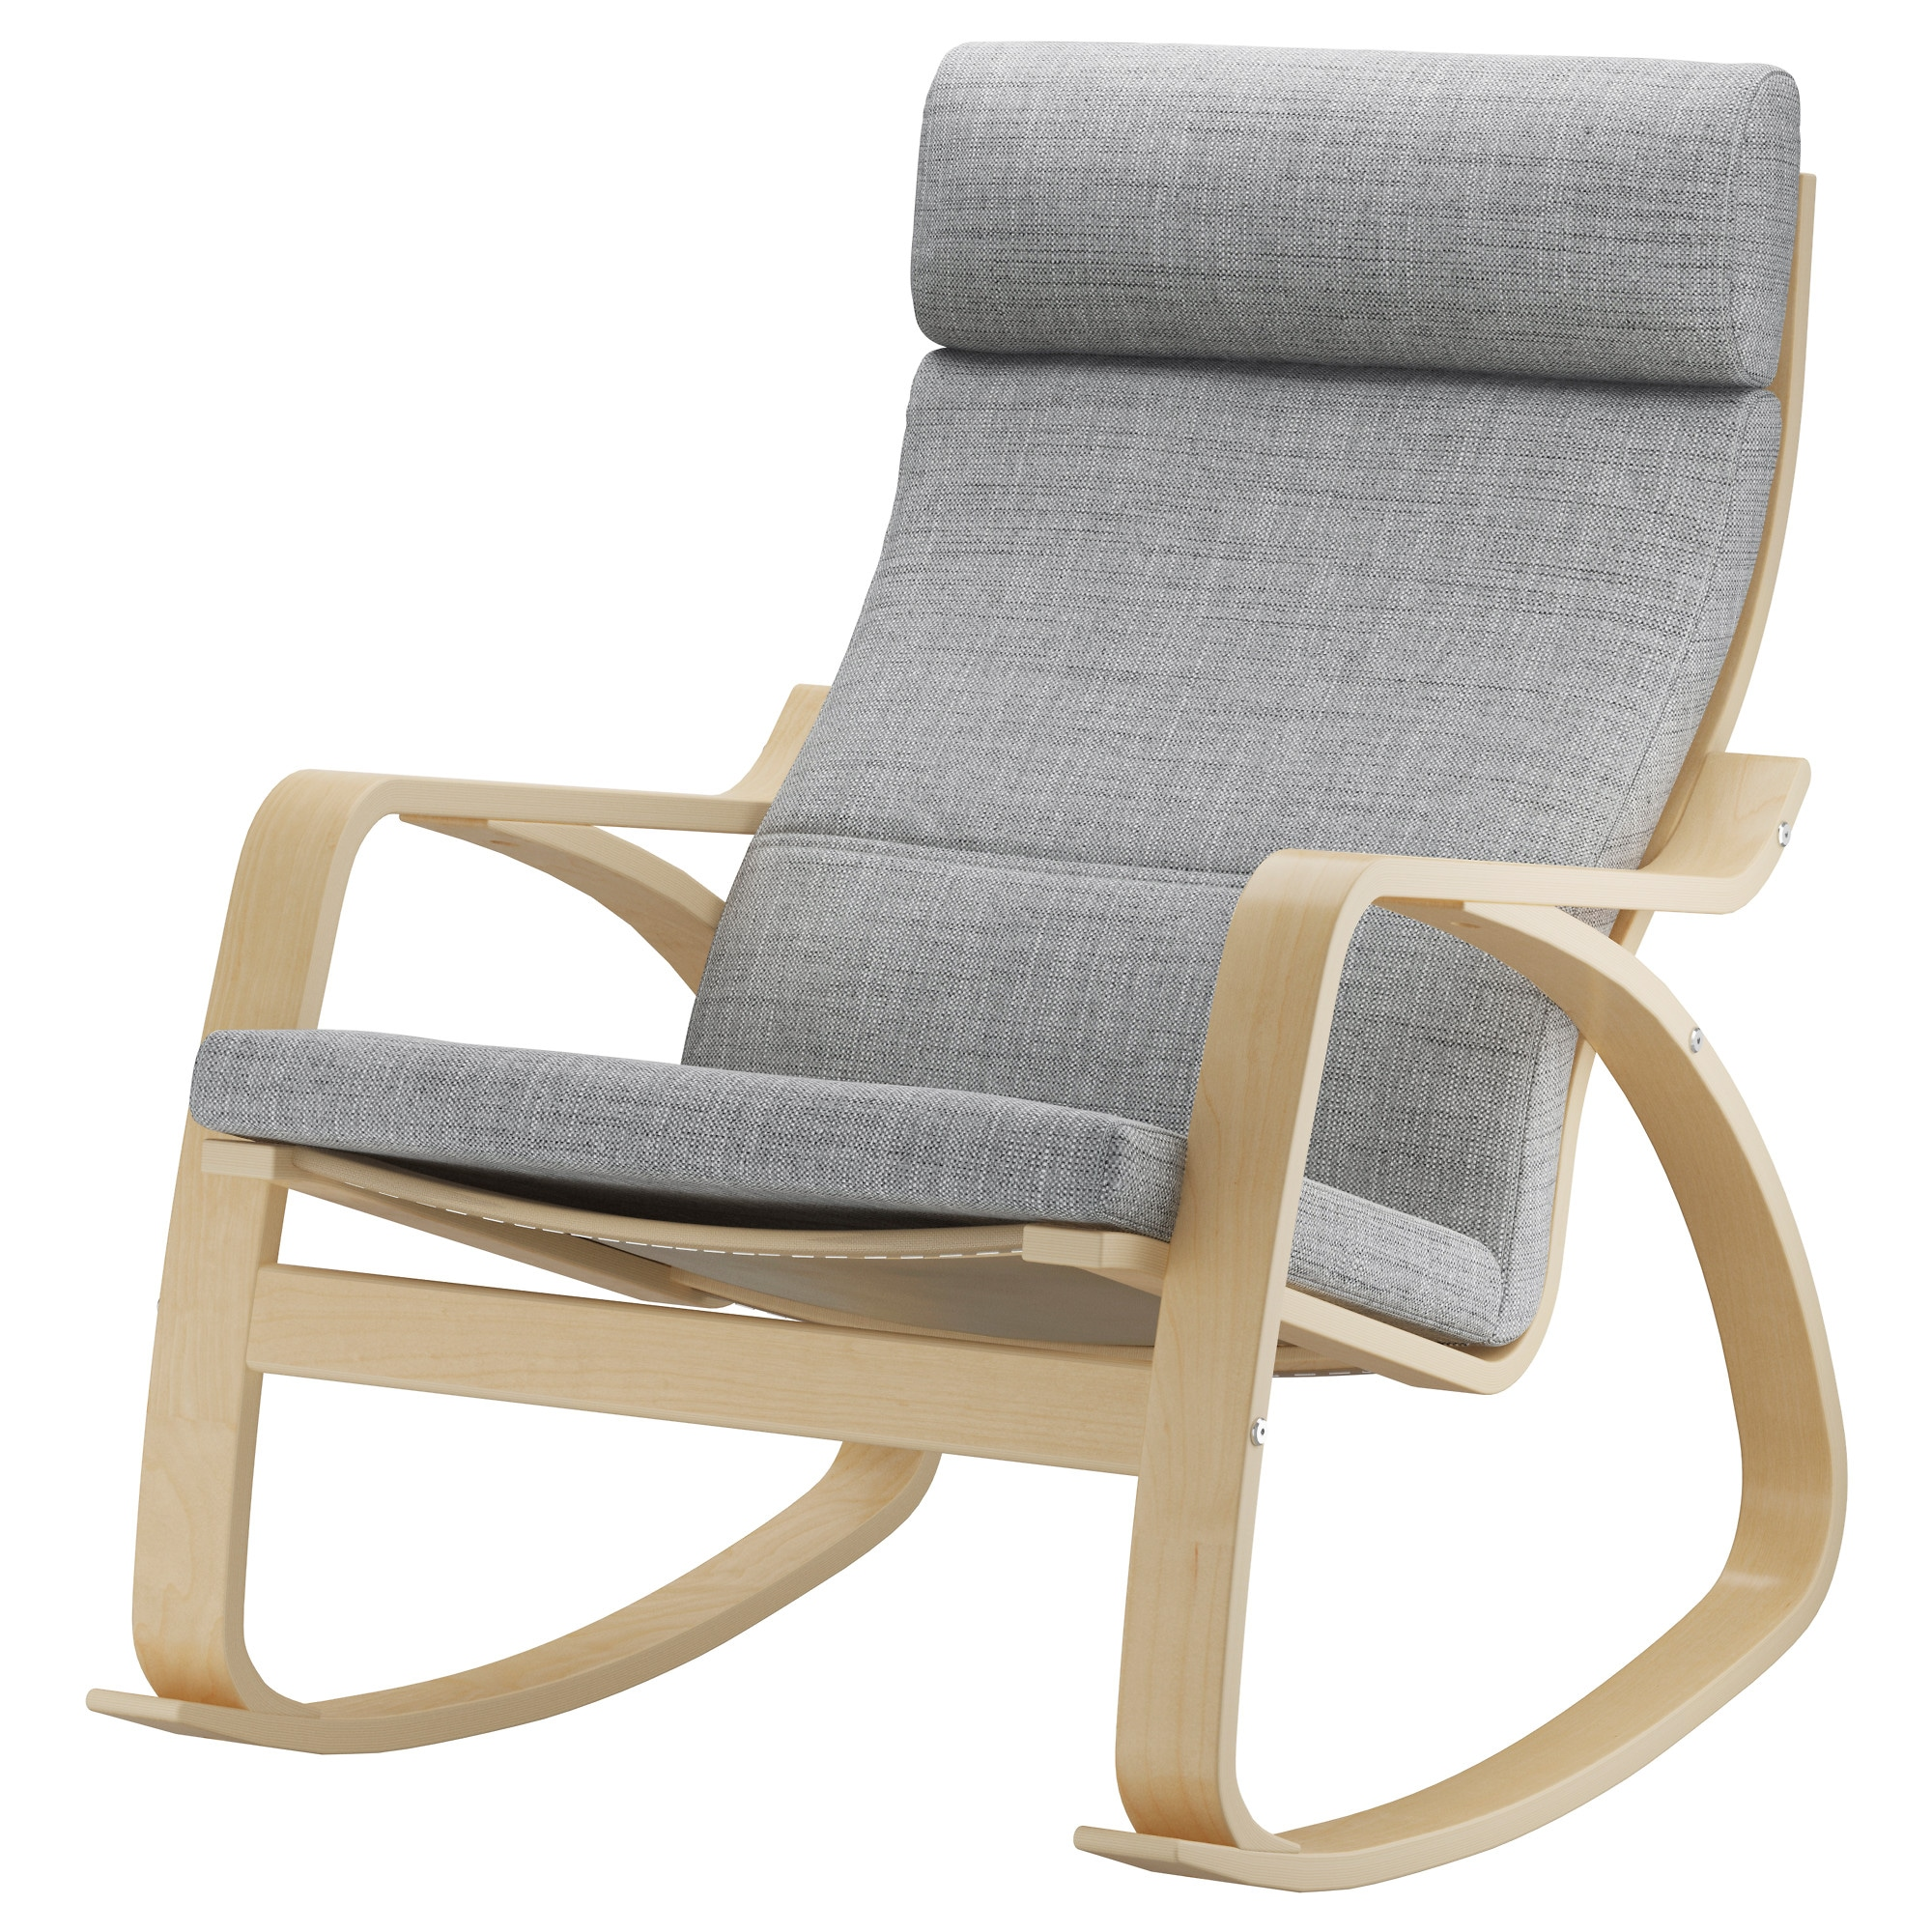 Ikea lillberg rocking chair - Ikea Lillberg Rocking Chair 0